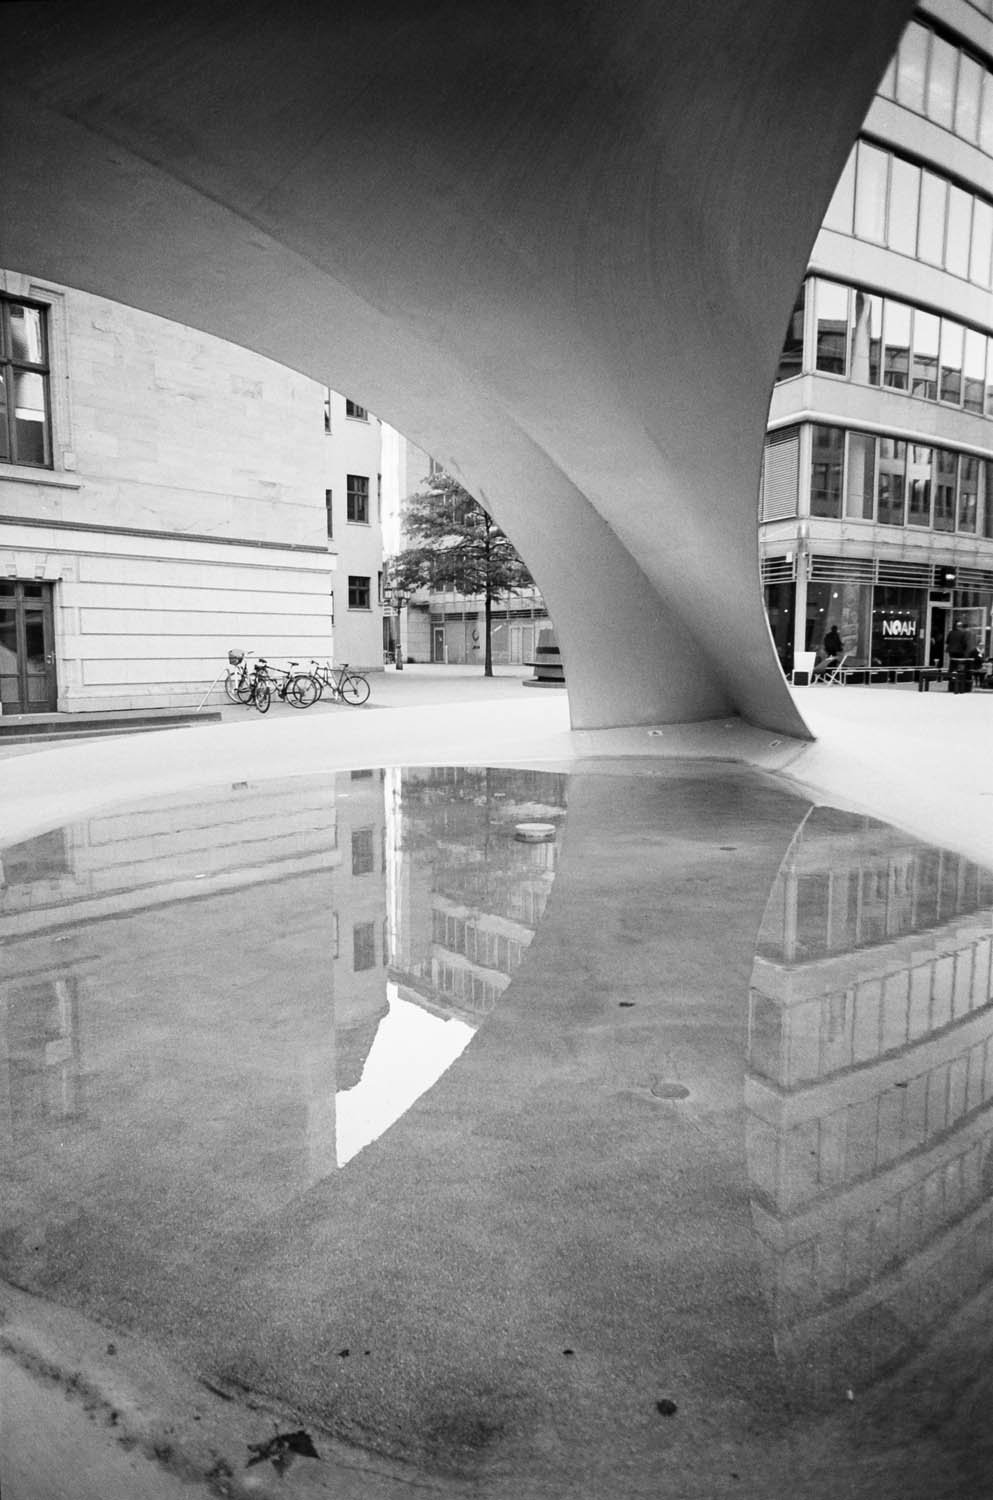 Rain Reflections. Leica M2, MS Optical 24mm f/4 Perar. XTOL stock @20°C, box speed. Slight adjustments in LR.